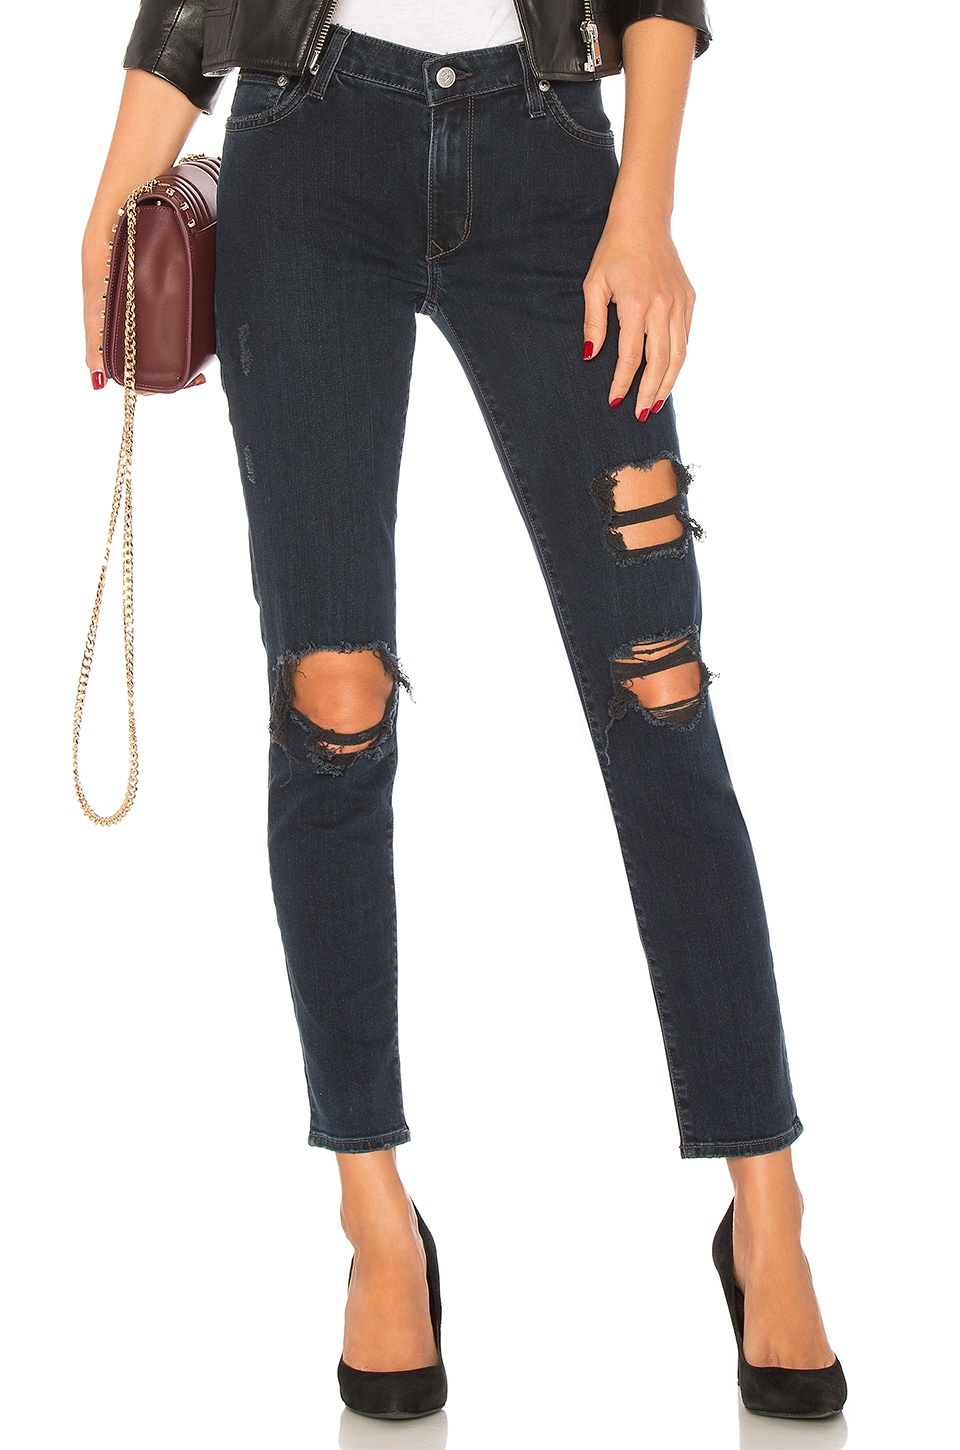 Lovers + Friends Terra Ricky Skinny Jean